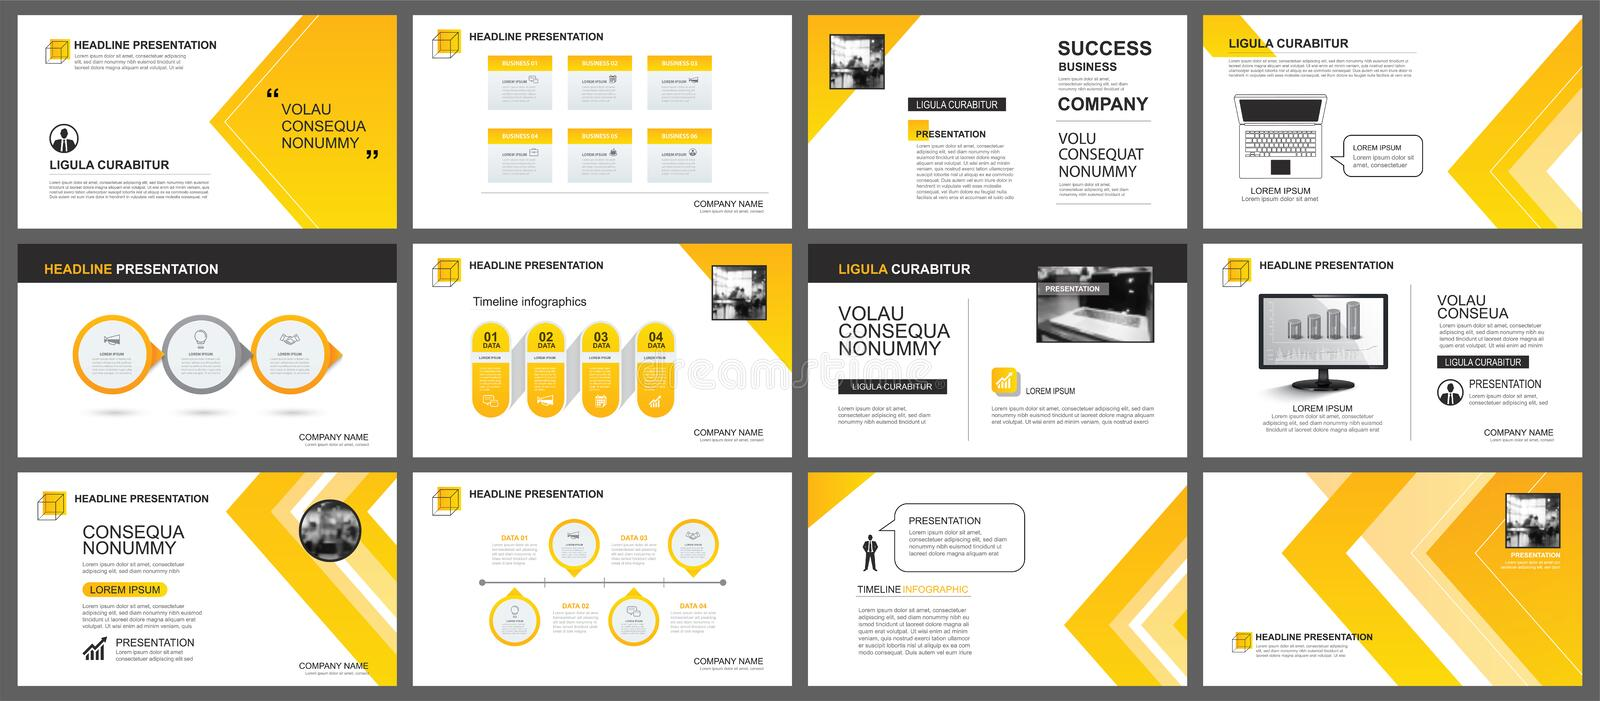 Presentation and slide layout background. Design yellow and orange gradient arrow template. Use for business annual report, flyer. Marketing, leaflet royalty free illustration